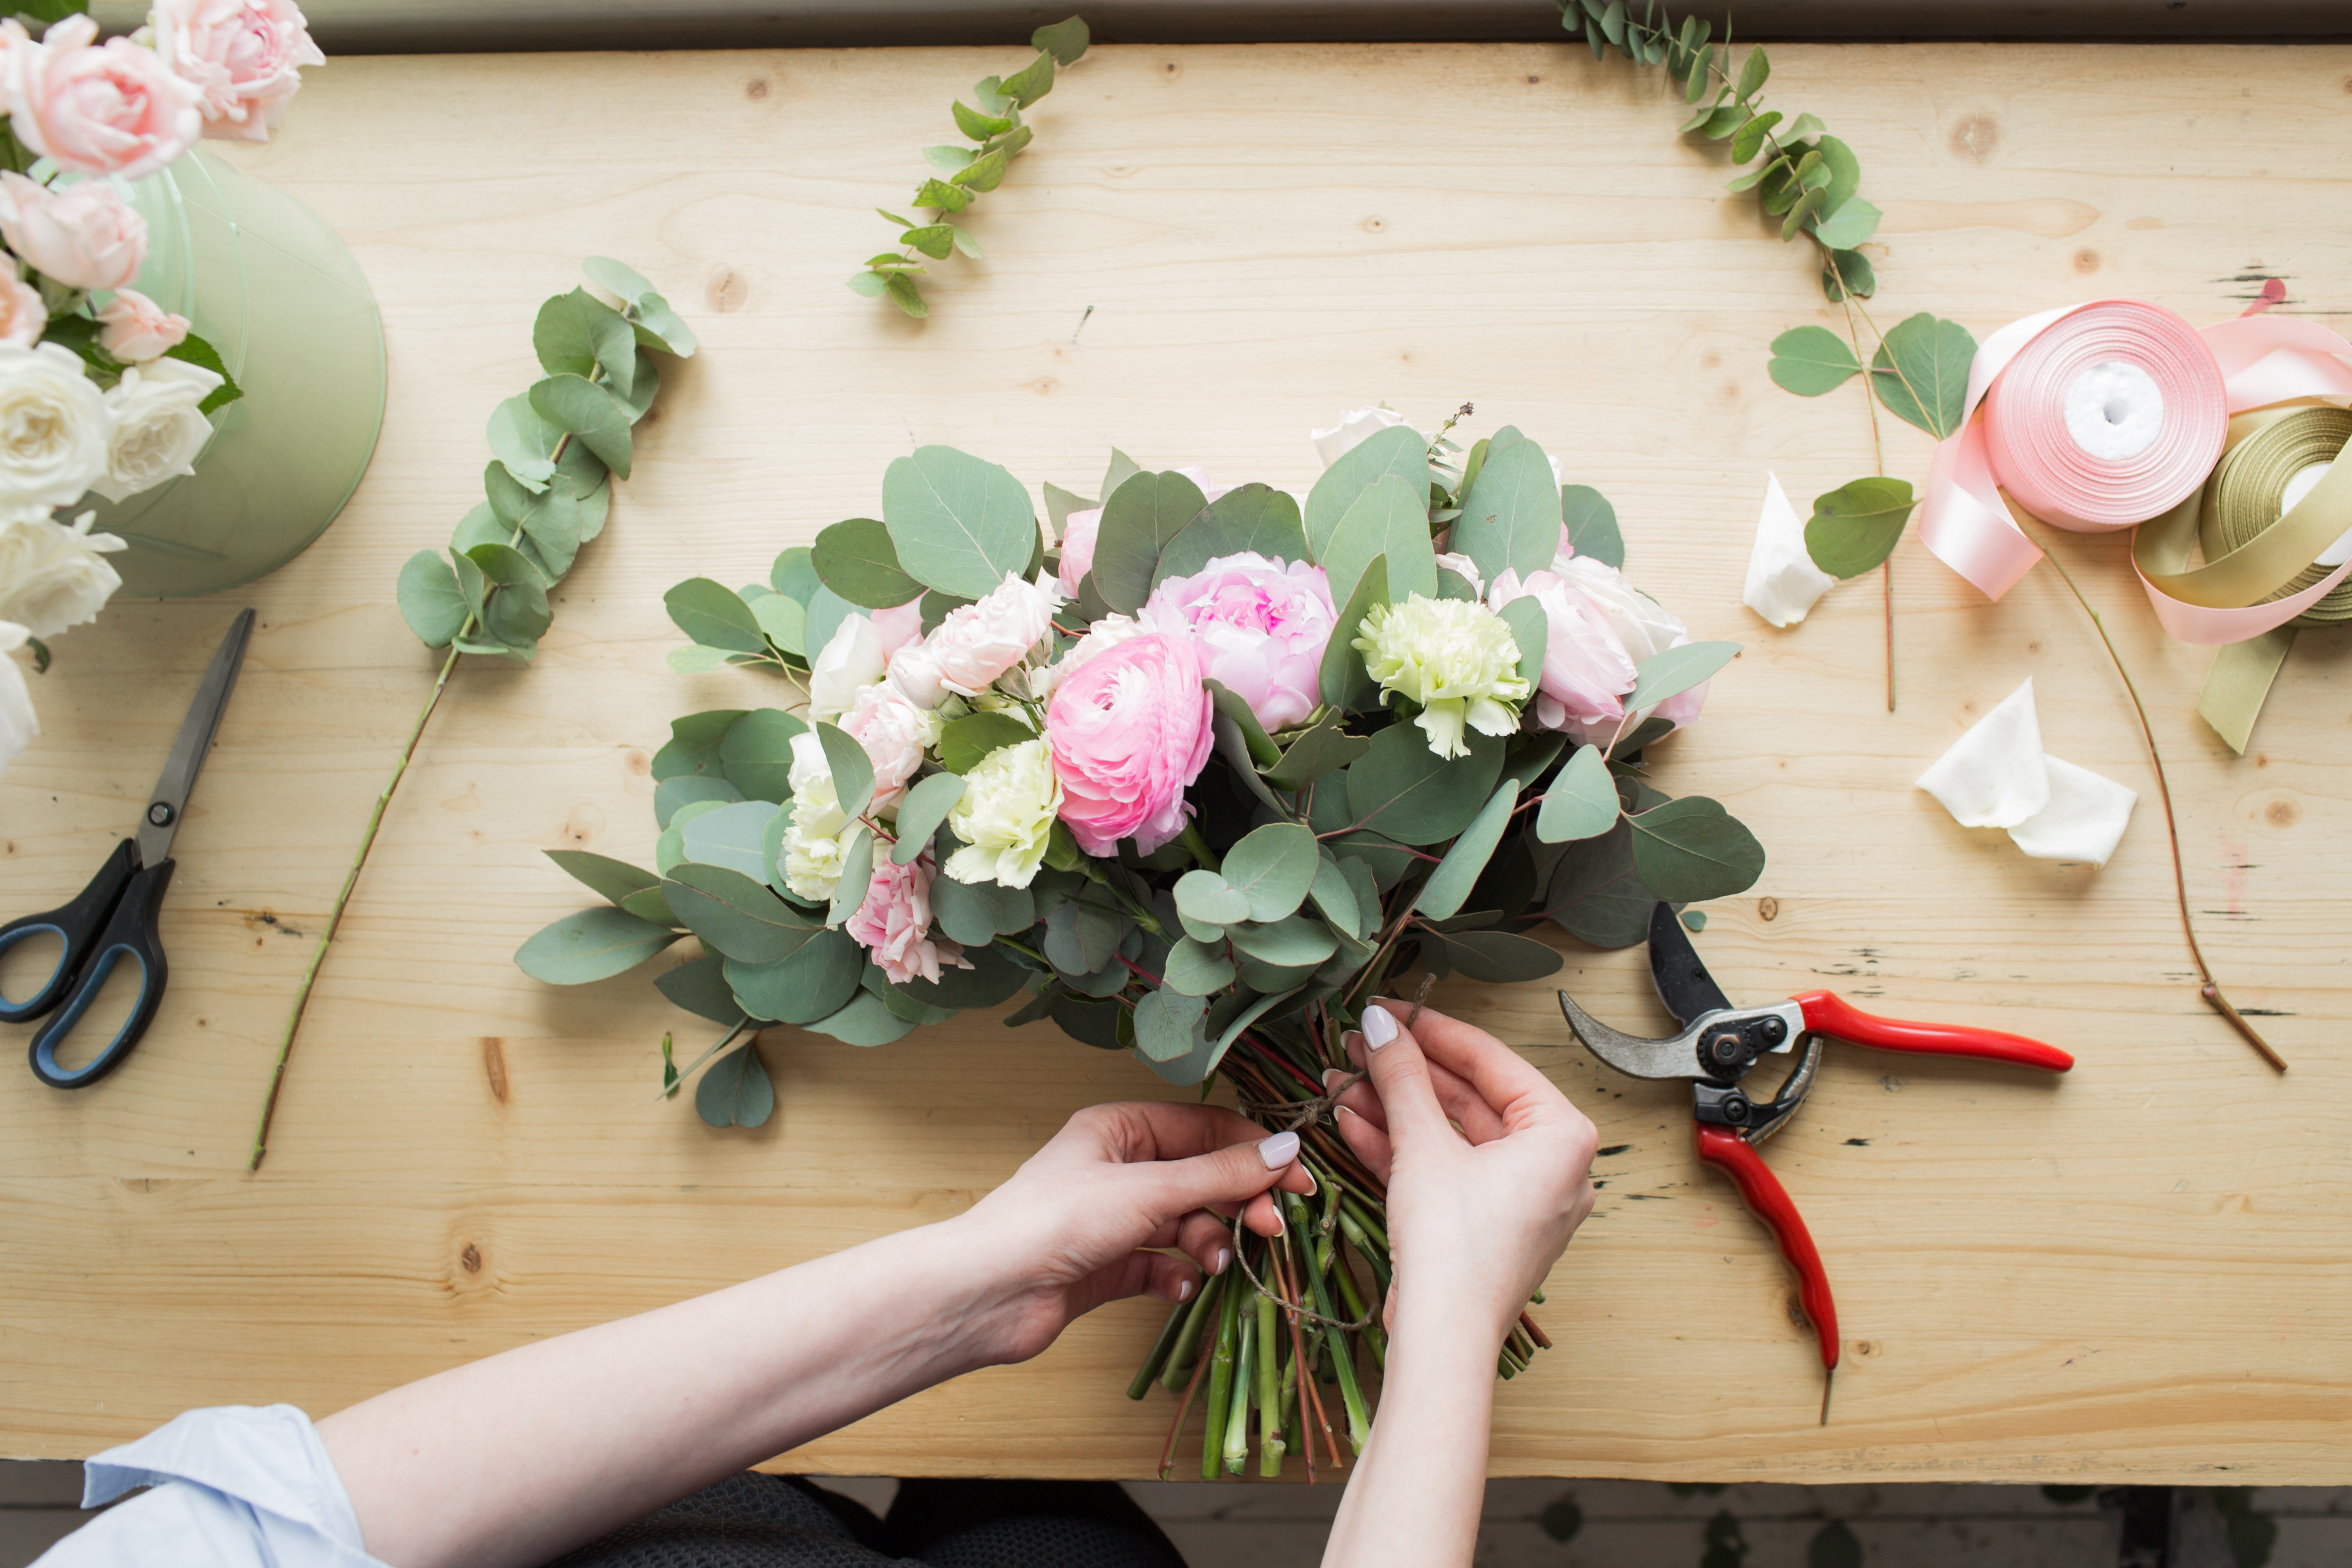 Build Your Own Spring Bouquet With These Basic Floral